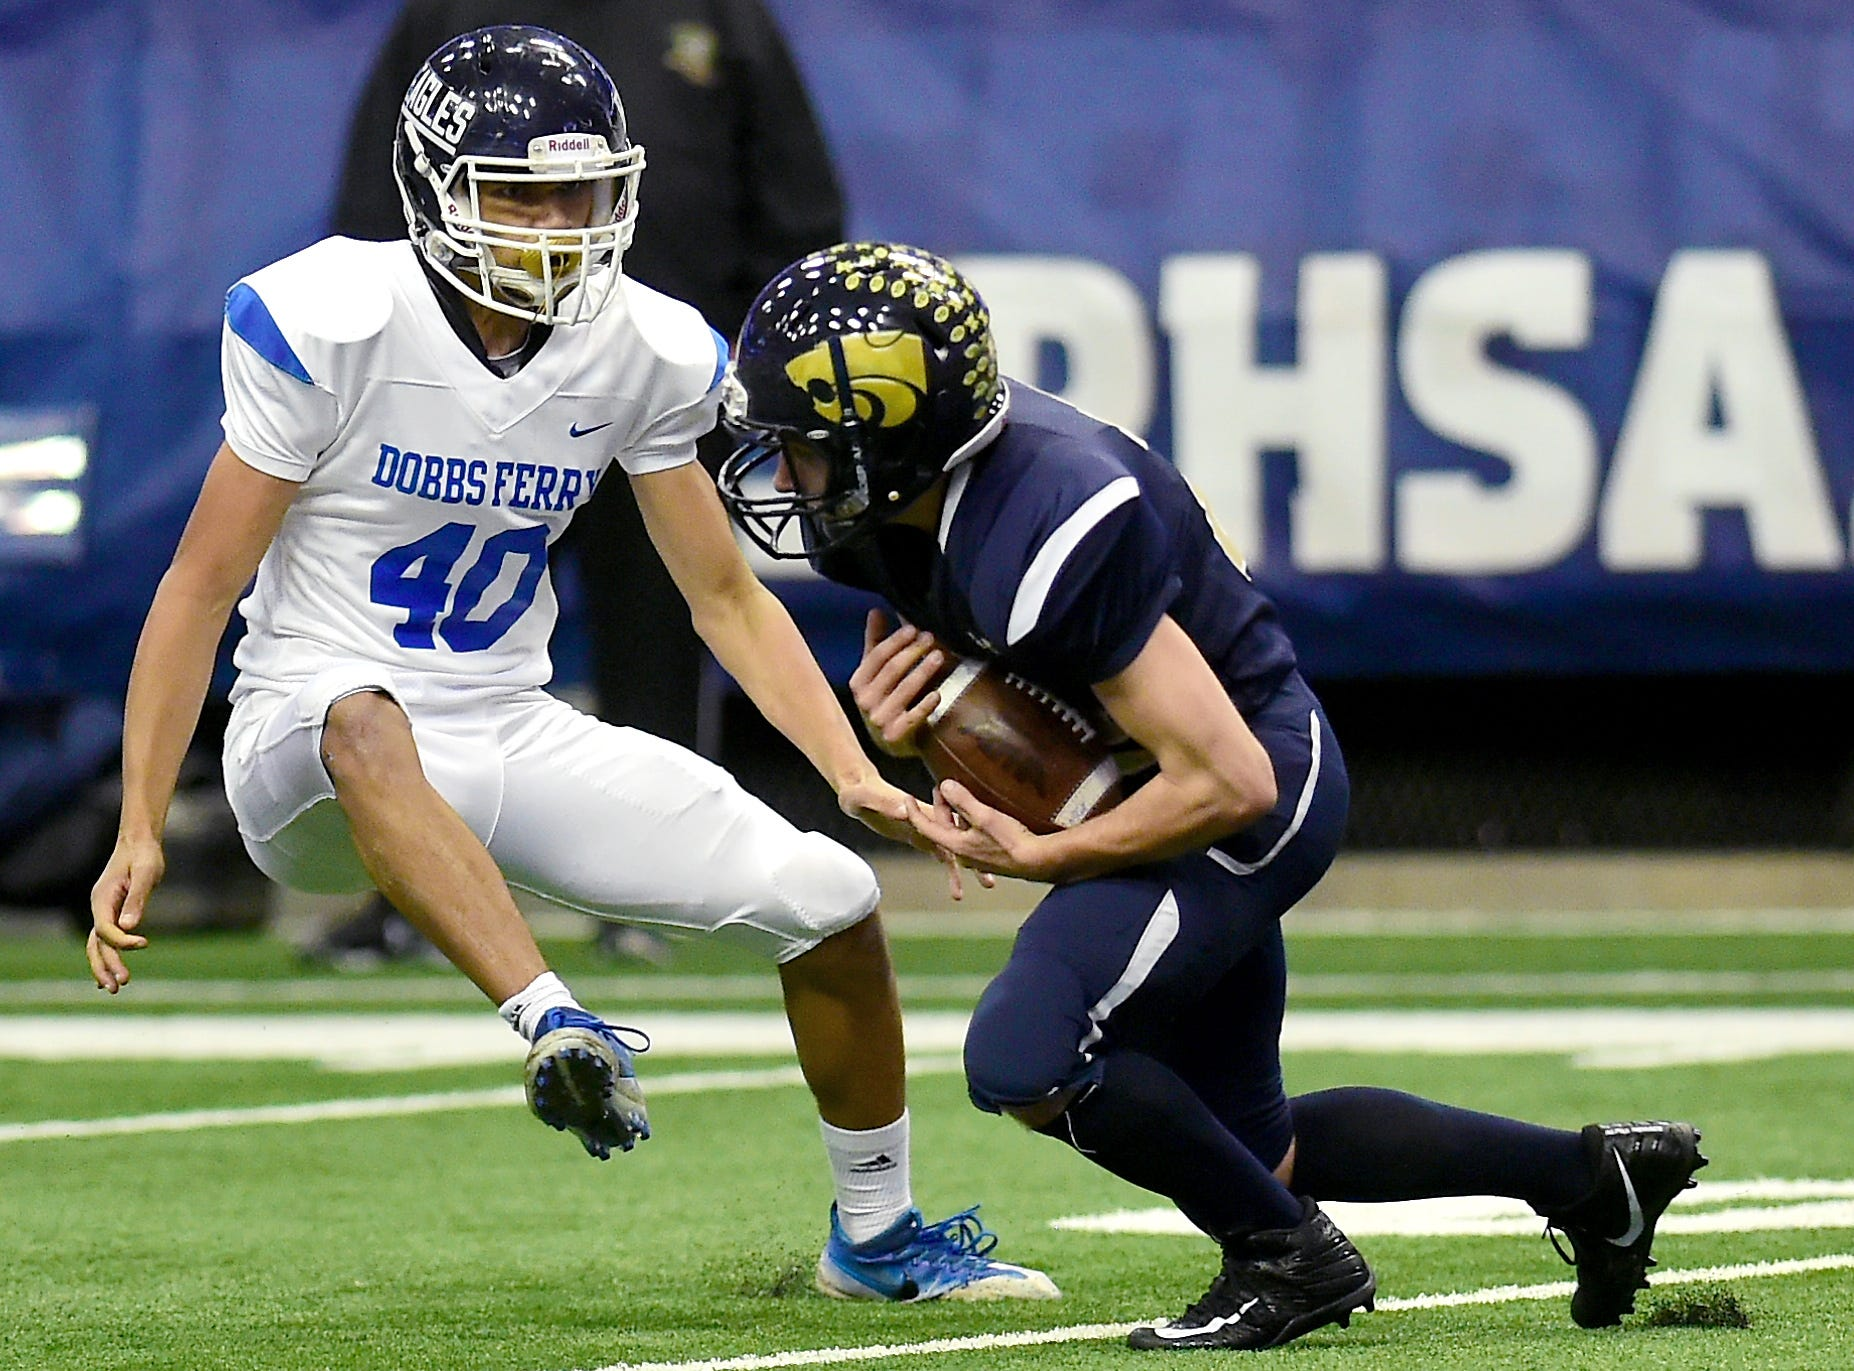 Susquehanna Valley vs. Dobbs Ferry, Class C NYSPHSAA state football final, Carrier Dome, Syracuse. Friday, November 23, 2018.